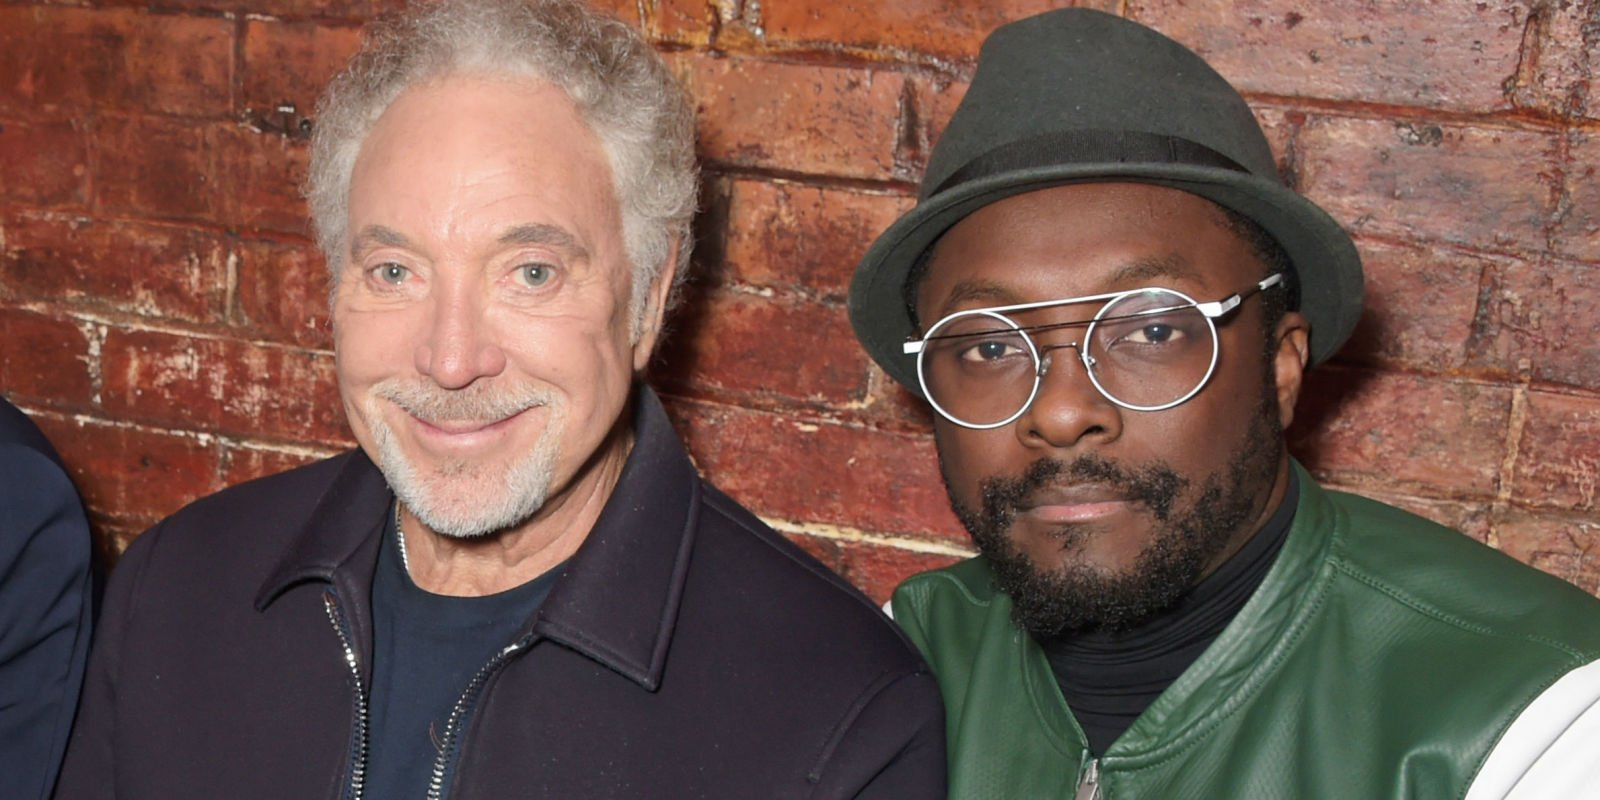 The Voice UK coaches Tom Jones and will.i.am are planning to record a song together